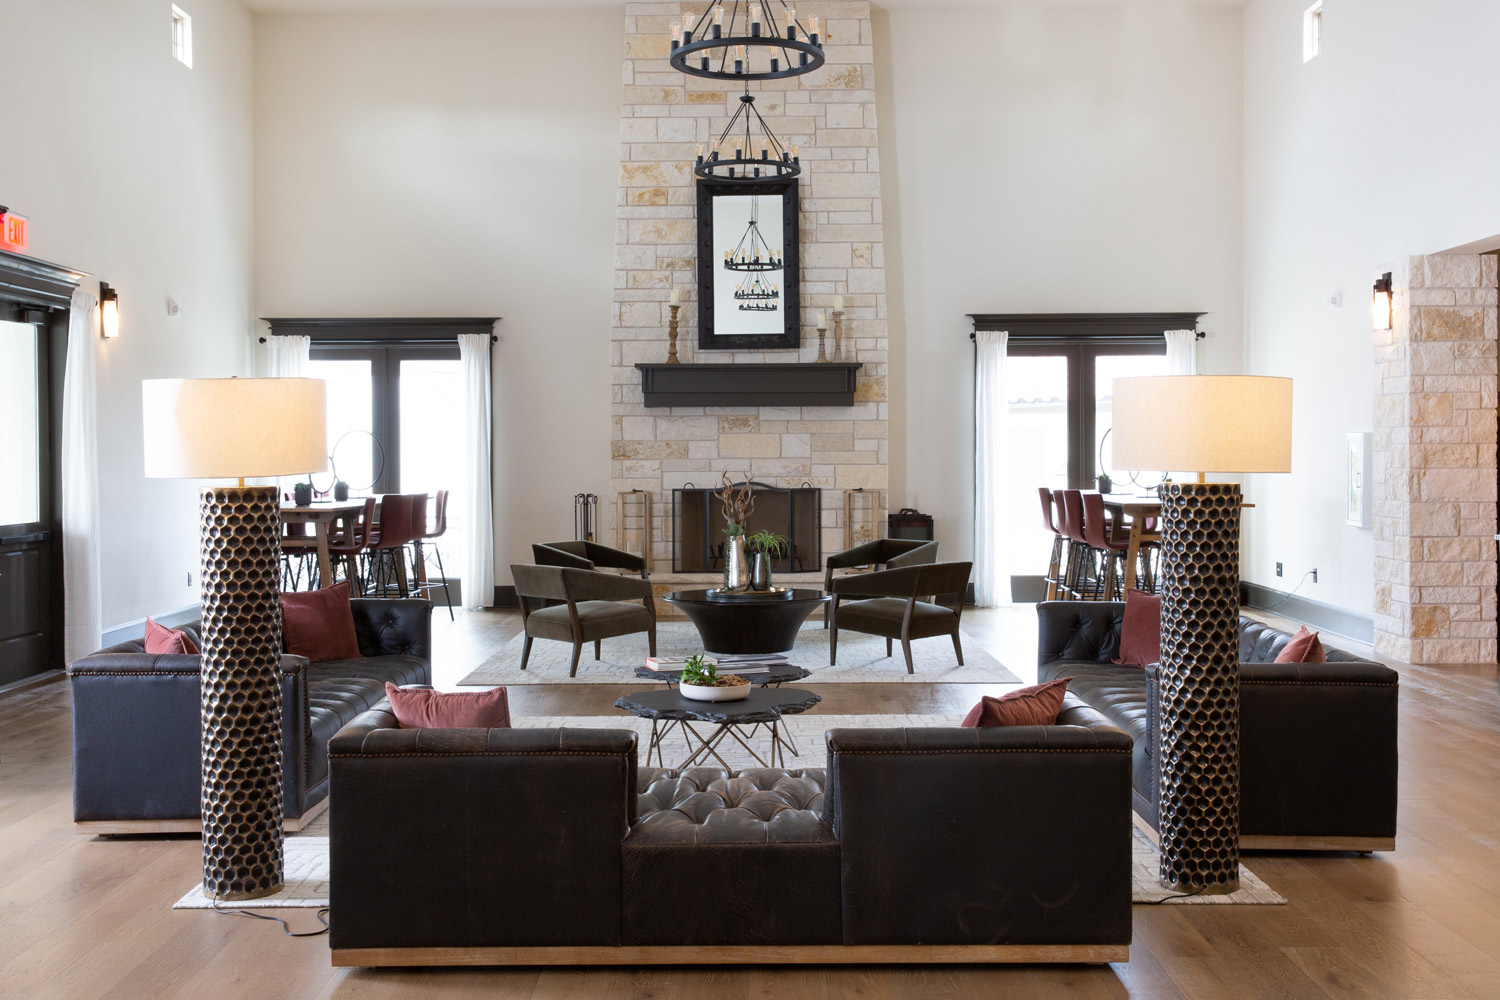 Stylish Interiors at Oxford at Santa Clara Apartments in Pflugerville, Texas